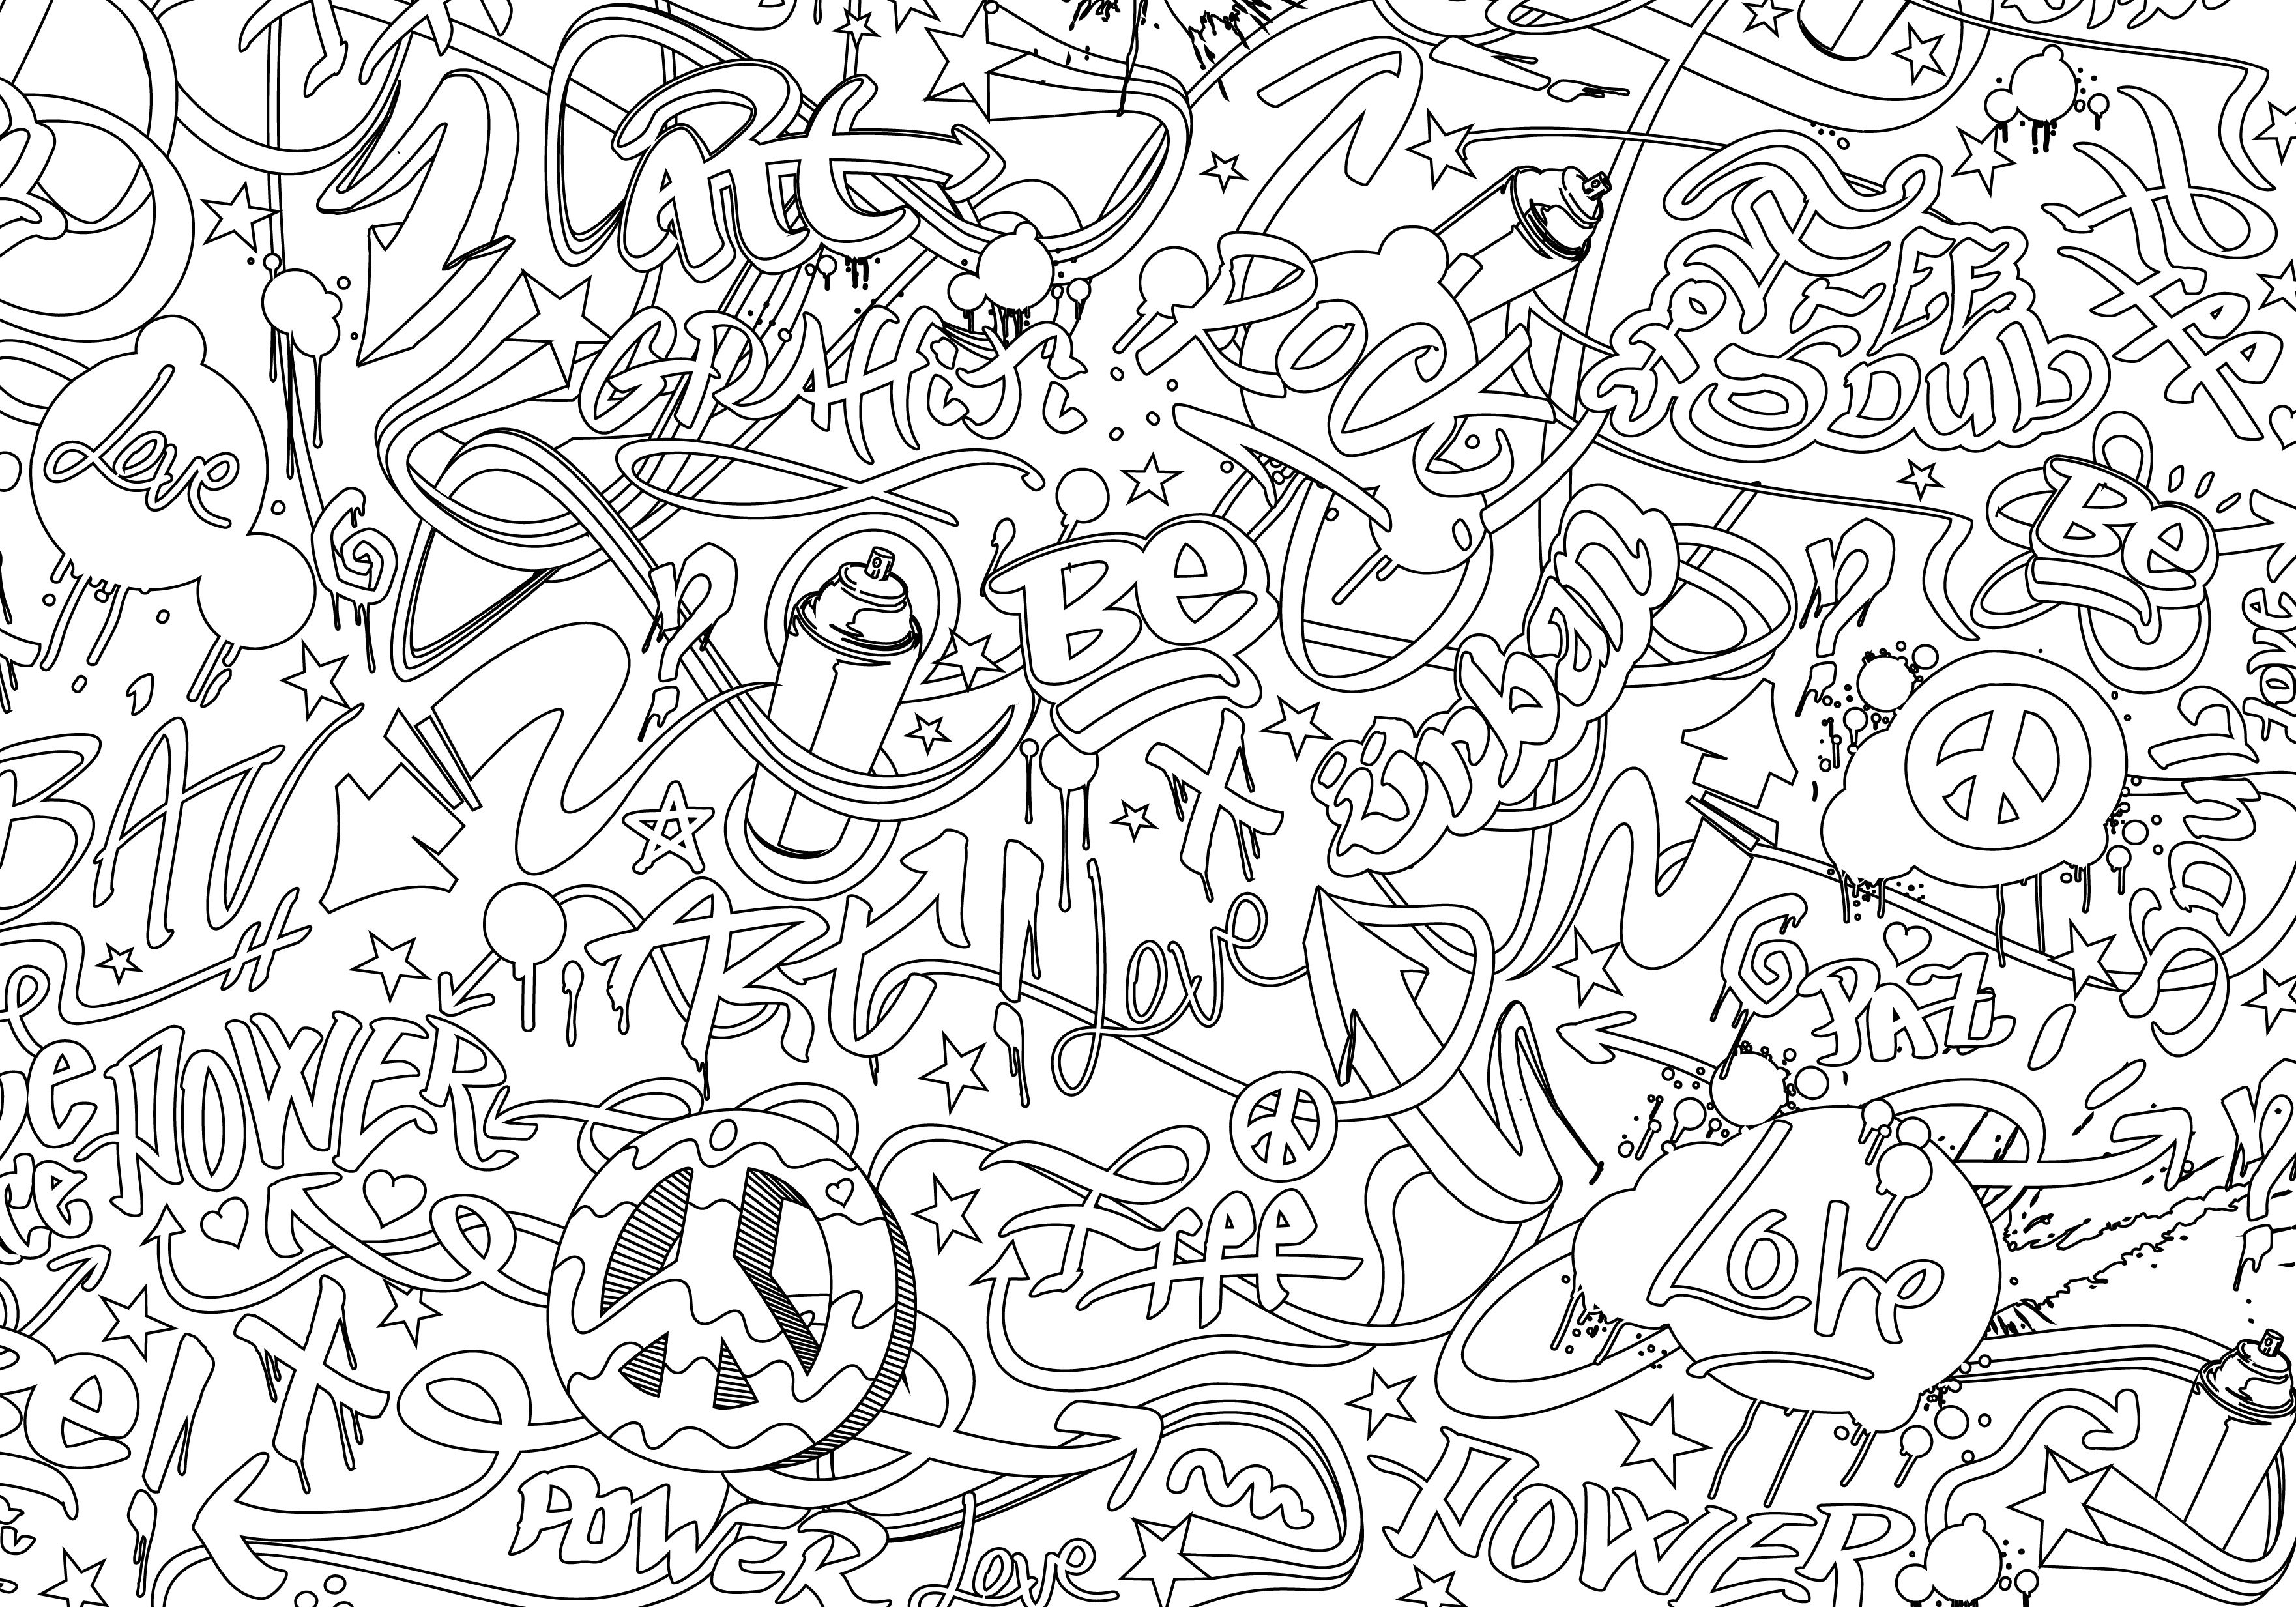 Graffiti | Coloring Books pour Coloriage Tag Graffiti